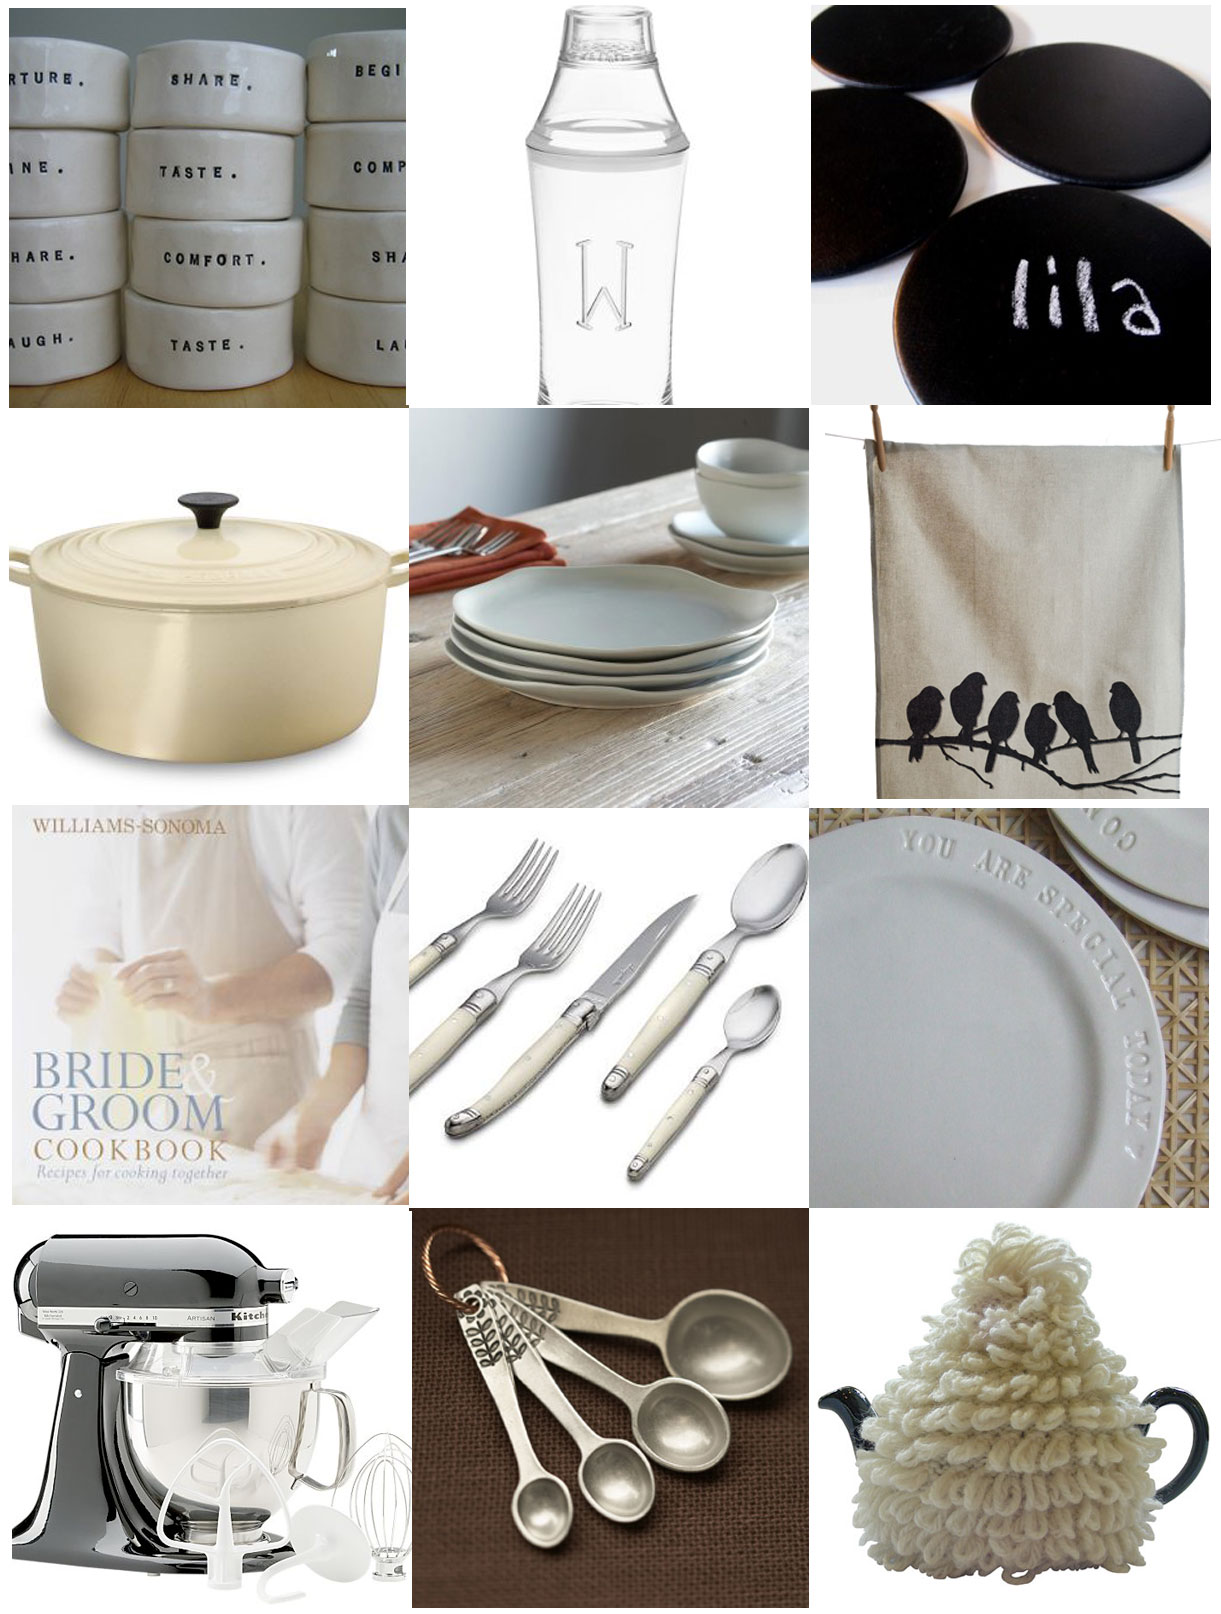 Wedding Blog Kitchen Registry & Shower